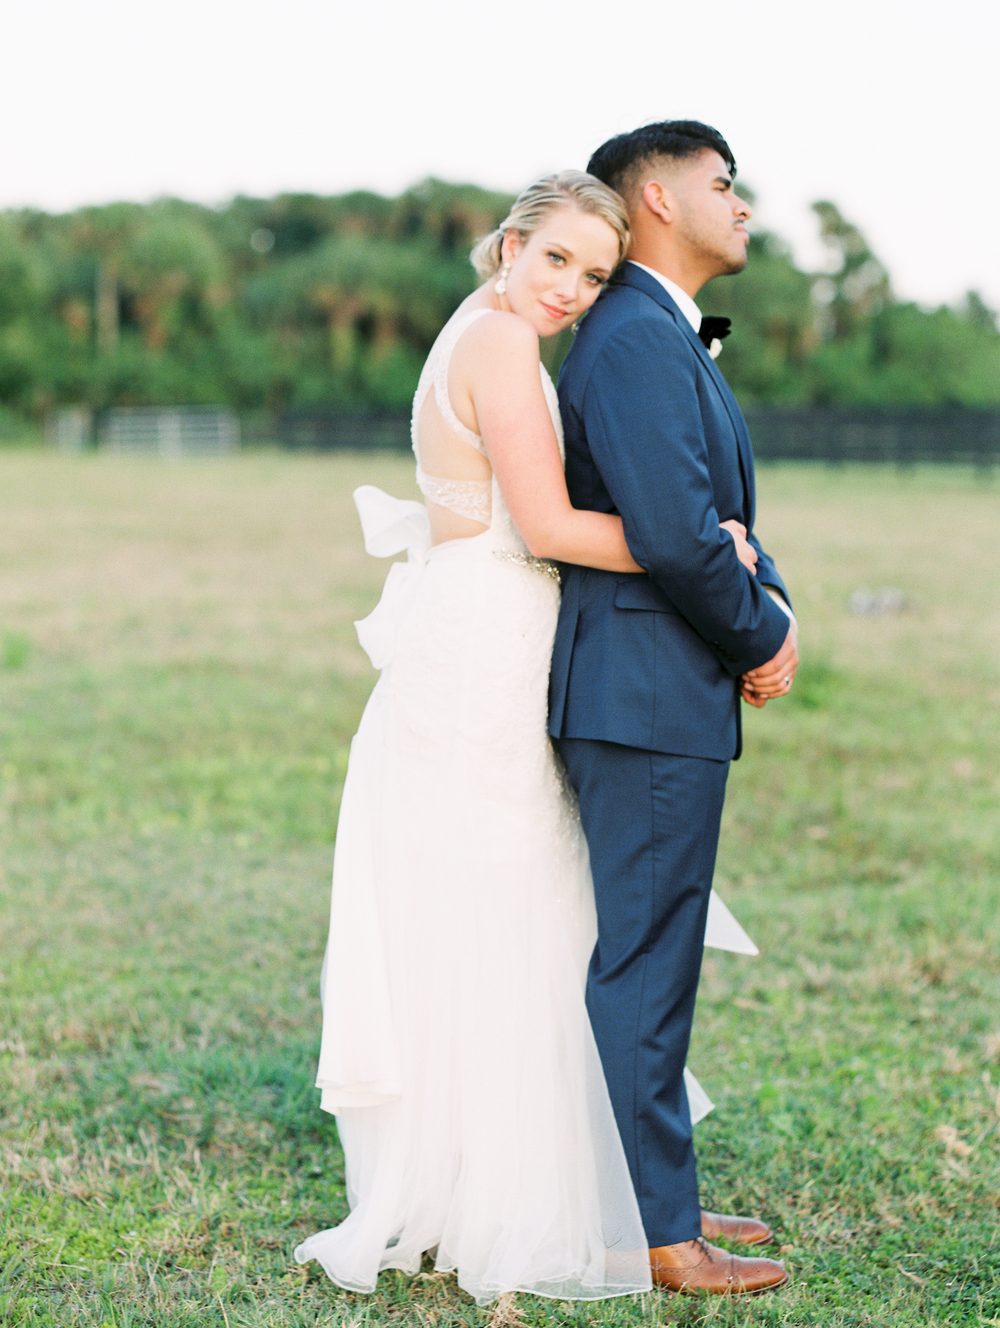 Sterling stables, brevard county FL wedding bride and groom photo